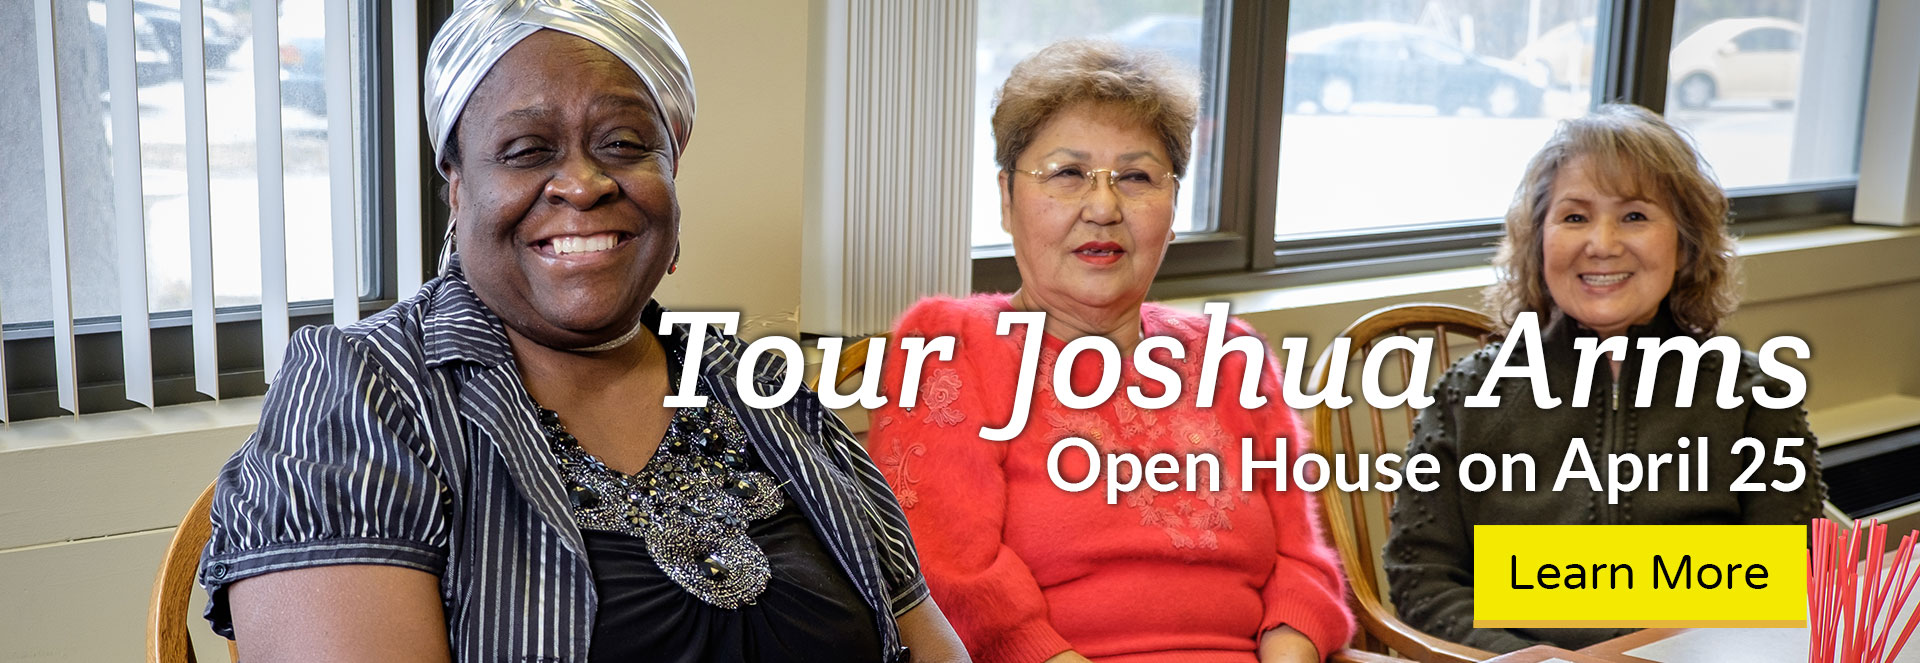 Tour Joshua Arms - Open House on April 25. Click here to learn more!